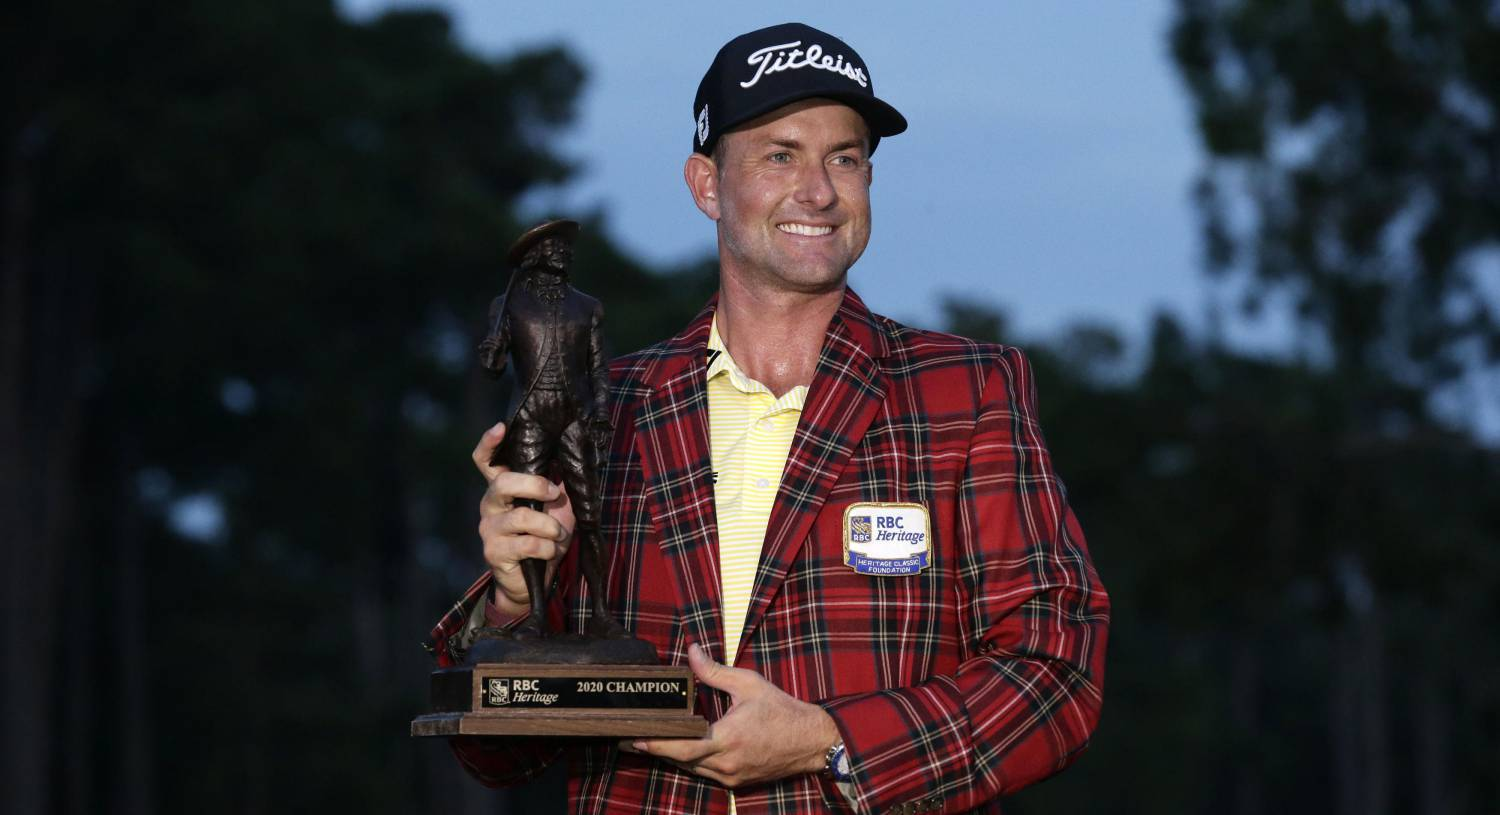 Webb Simpson claims RBC Heritage crown with tournament record score